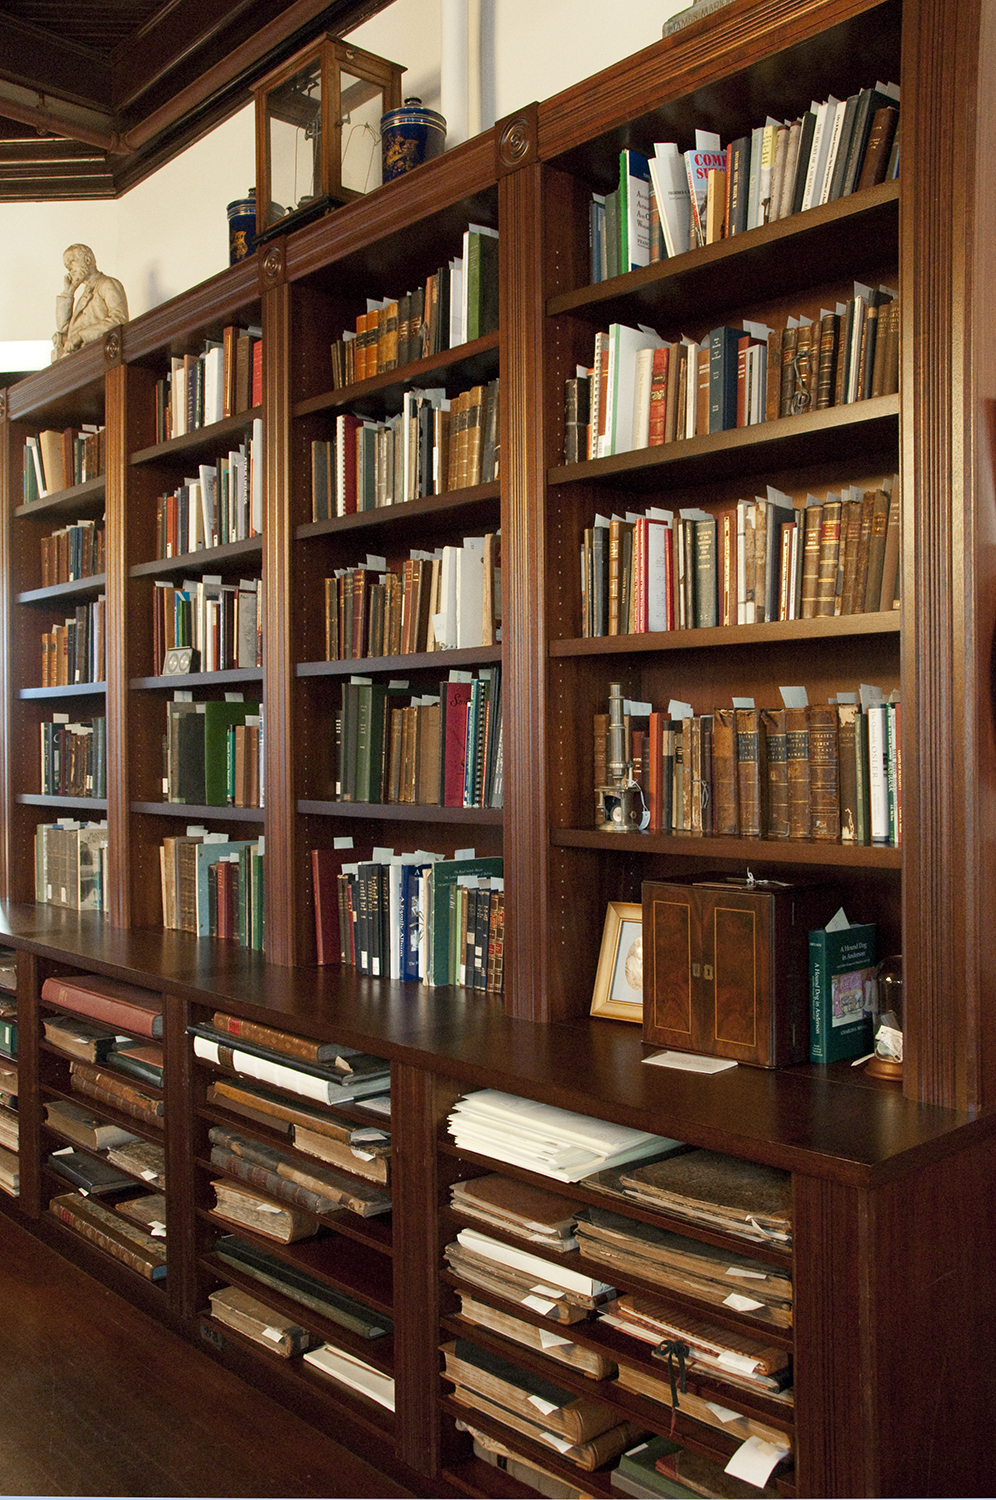 Photograph of the first floor bookcase of the Waring, the Waring's holdings include over 12,000 books